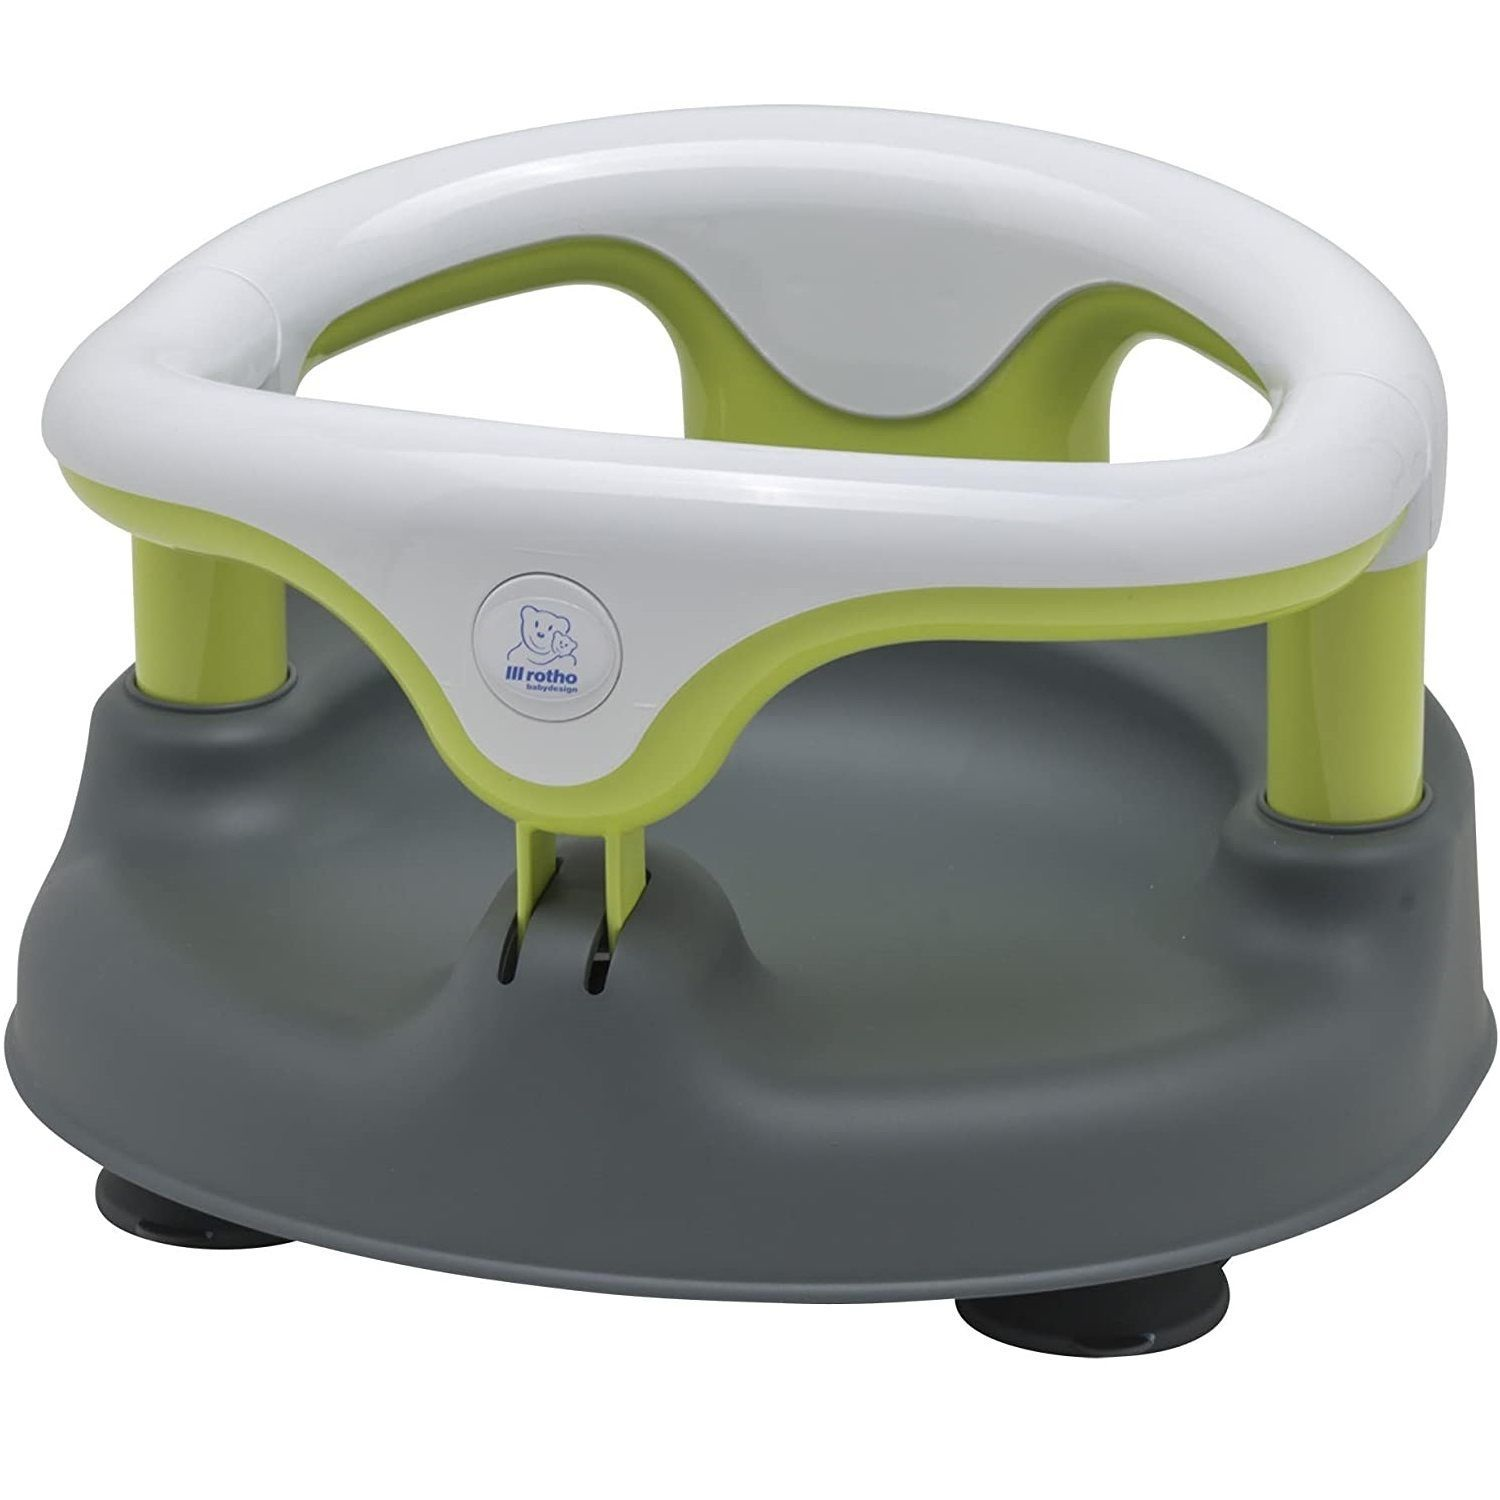 Rotho Babydesign Bath Seat, With hinged ring and child safety lock, 7-16 months, Up to 13 kg - Choose your colour - Grey/White/Apple Green